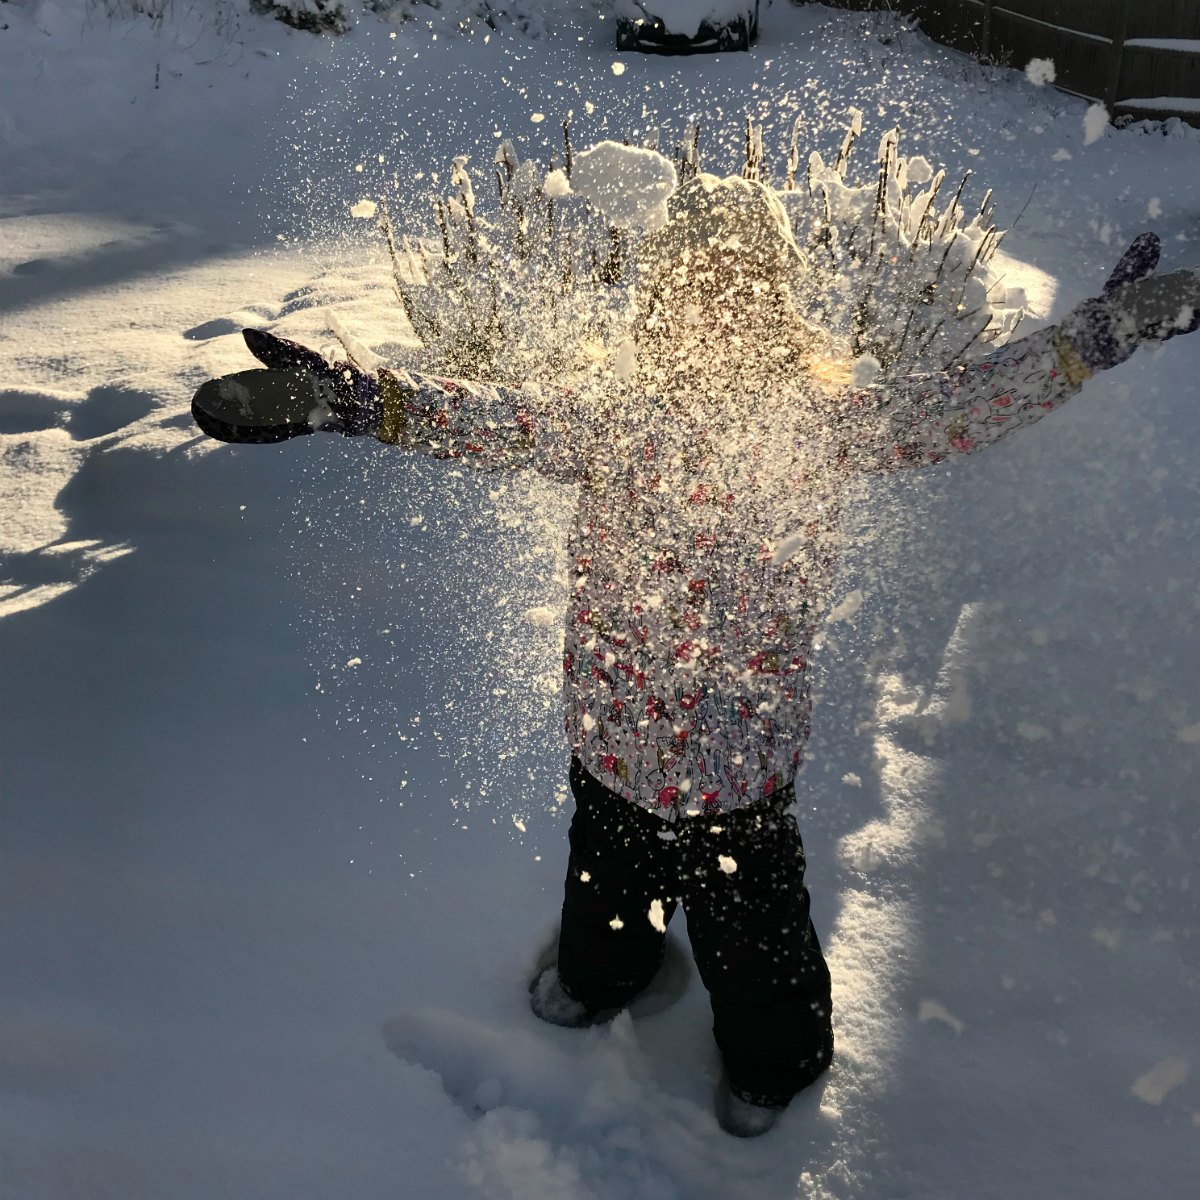 Snapshots from the snow 6